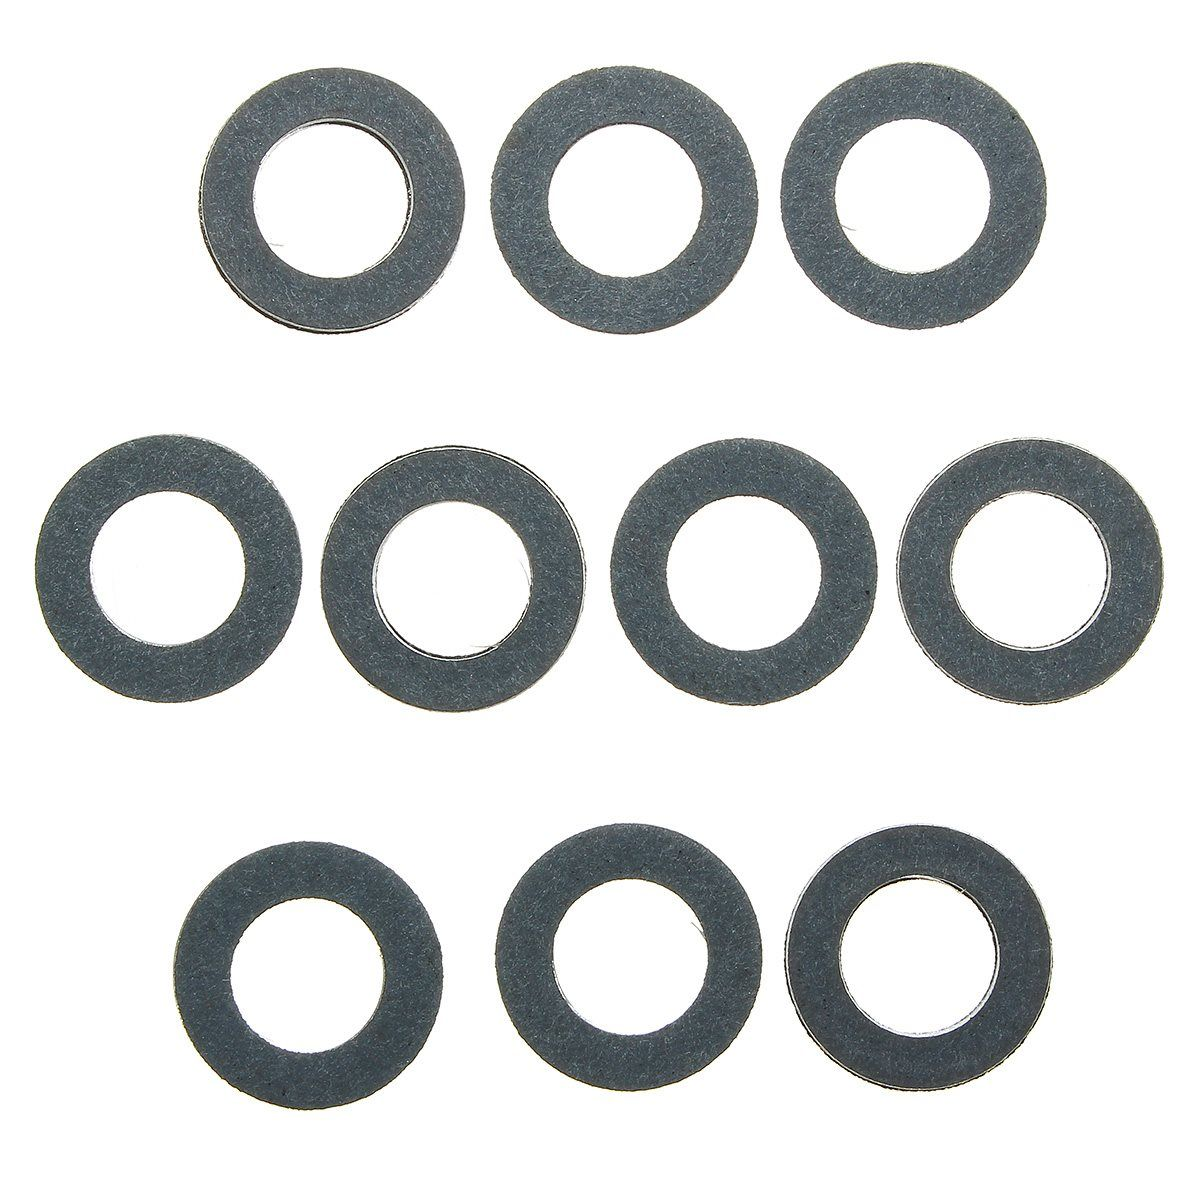 Set Of 10 Engine Oil Drain Plug Seal Gasket Rings Washer 90430 12031 For Toyota Drain Plugs Plugs Washer